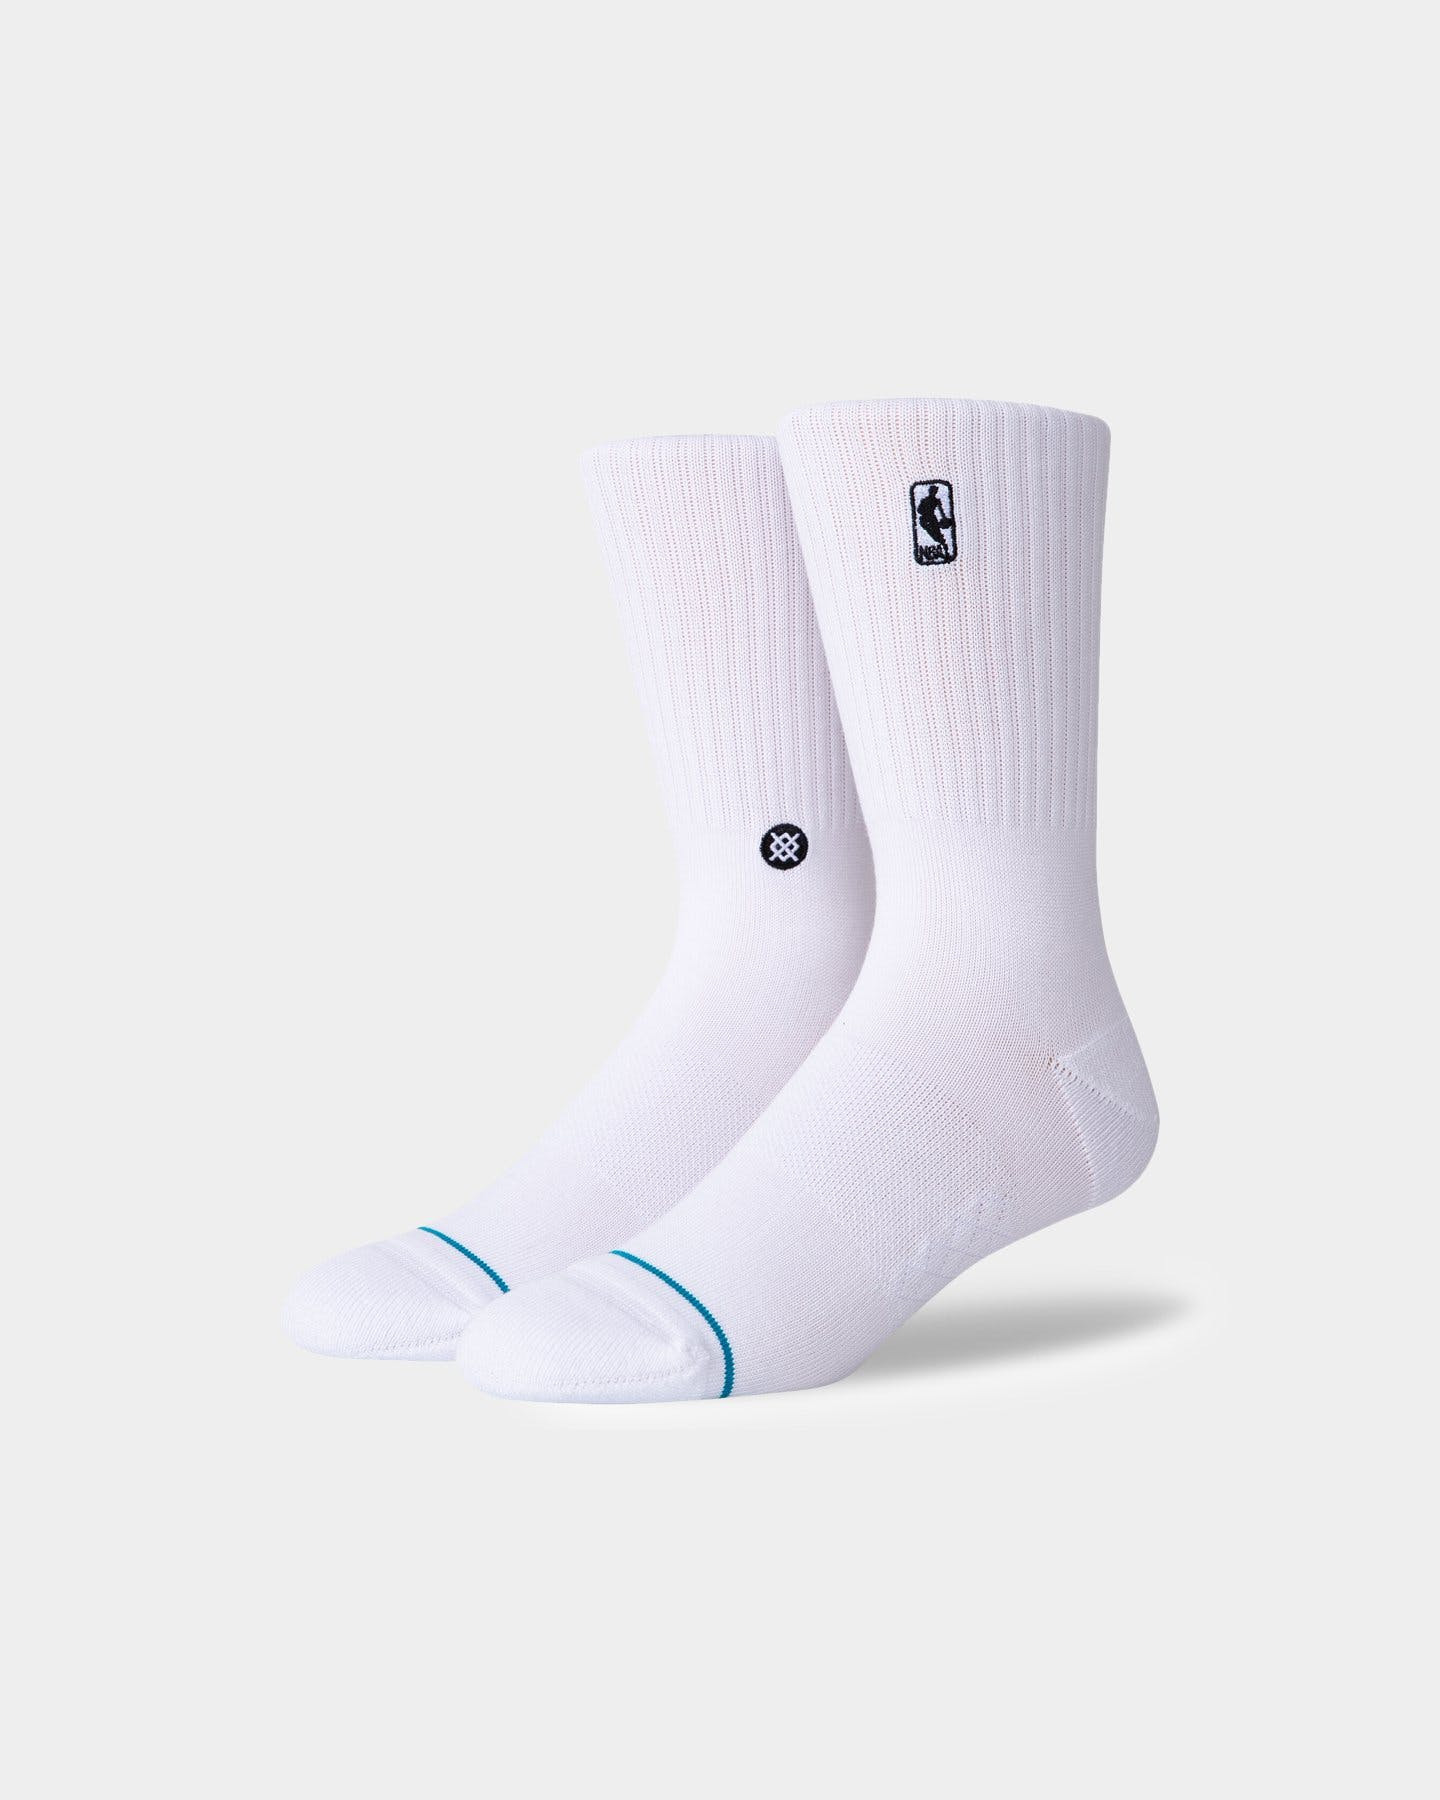 Stance NBA Logoman ST Socks - White SP-ApparelSocks-Mens Stance